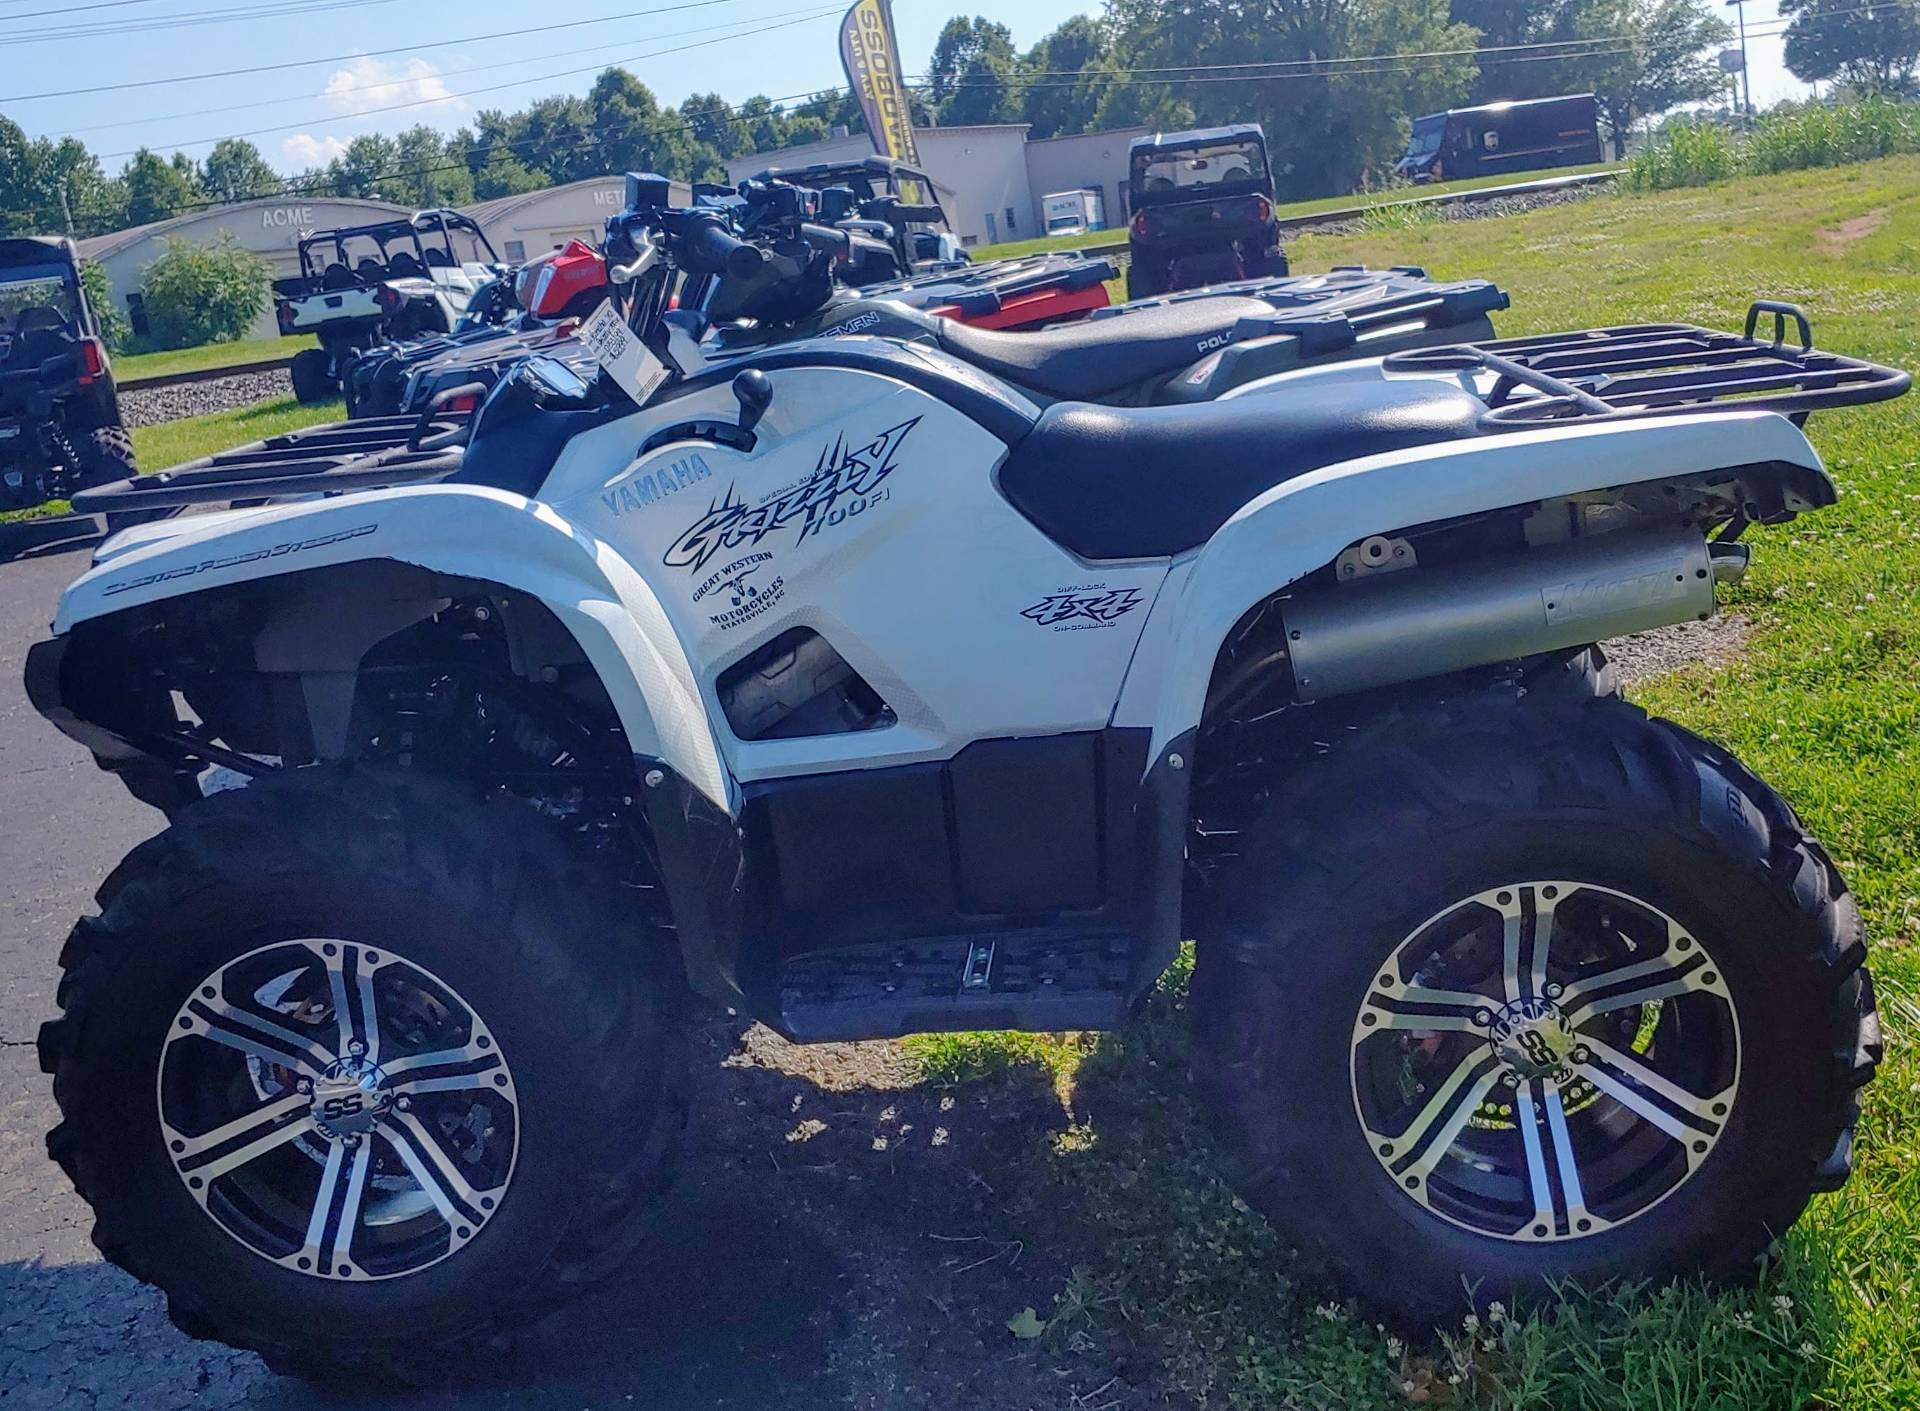 2010 Yamaha Grizzly 700 FI Auto. 4x4 EPS Special Edition in Statesville, North Carolina - Photo 2